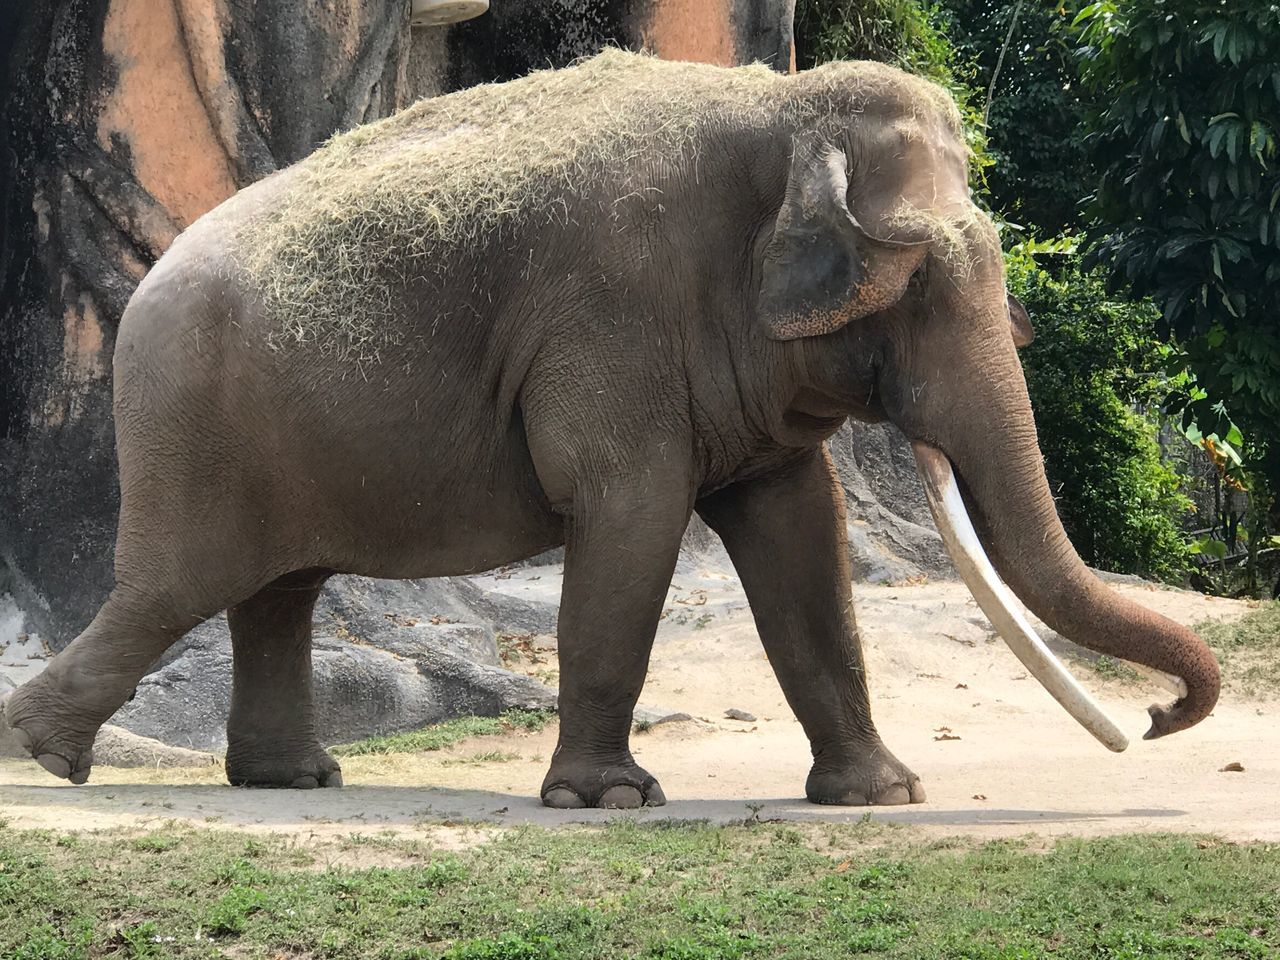 Animals In The Wild Animal Wildlife One Animal Mammal Zoo Animal Themes Elephant Day Outdoors Side View No People Safari Animals Nature Animal Trunk Tusk Close-up